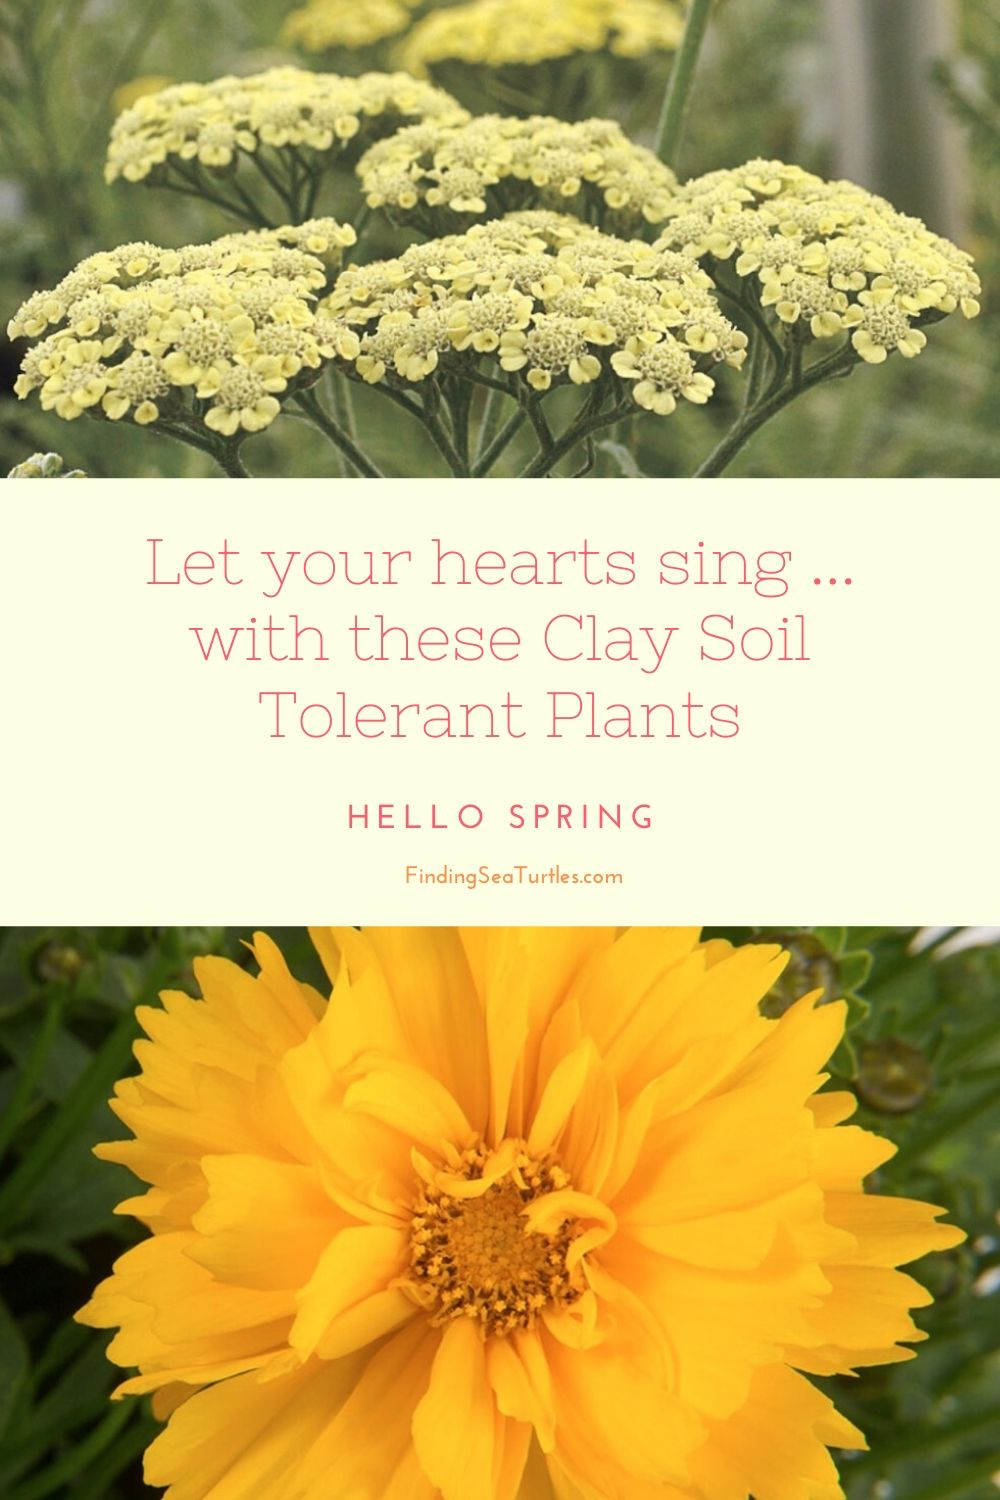 Let your hearts sing with these Clay Soil Tolerant Plants #Perennials #ClayTolerantPerennials #PlantsThatThriveinClay #Gardening #ClaySoil #TolerantofClaySoils